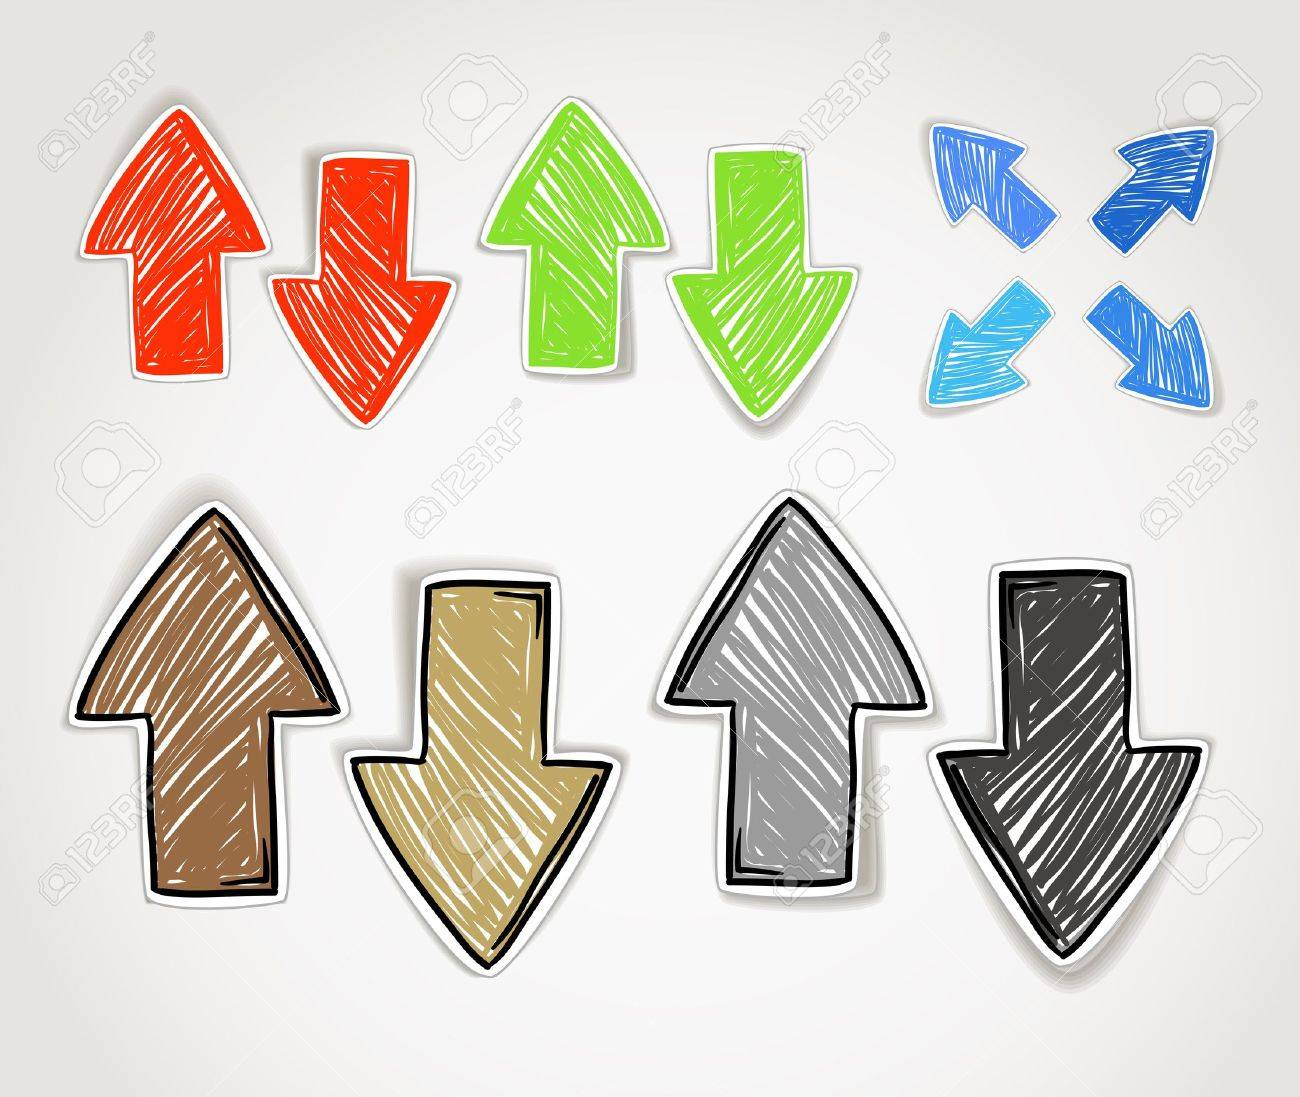 Color drawdown - Draw Down Hand Drawn Arrow Symbols Collection Illustration